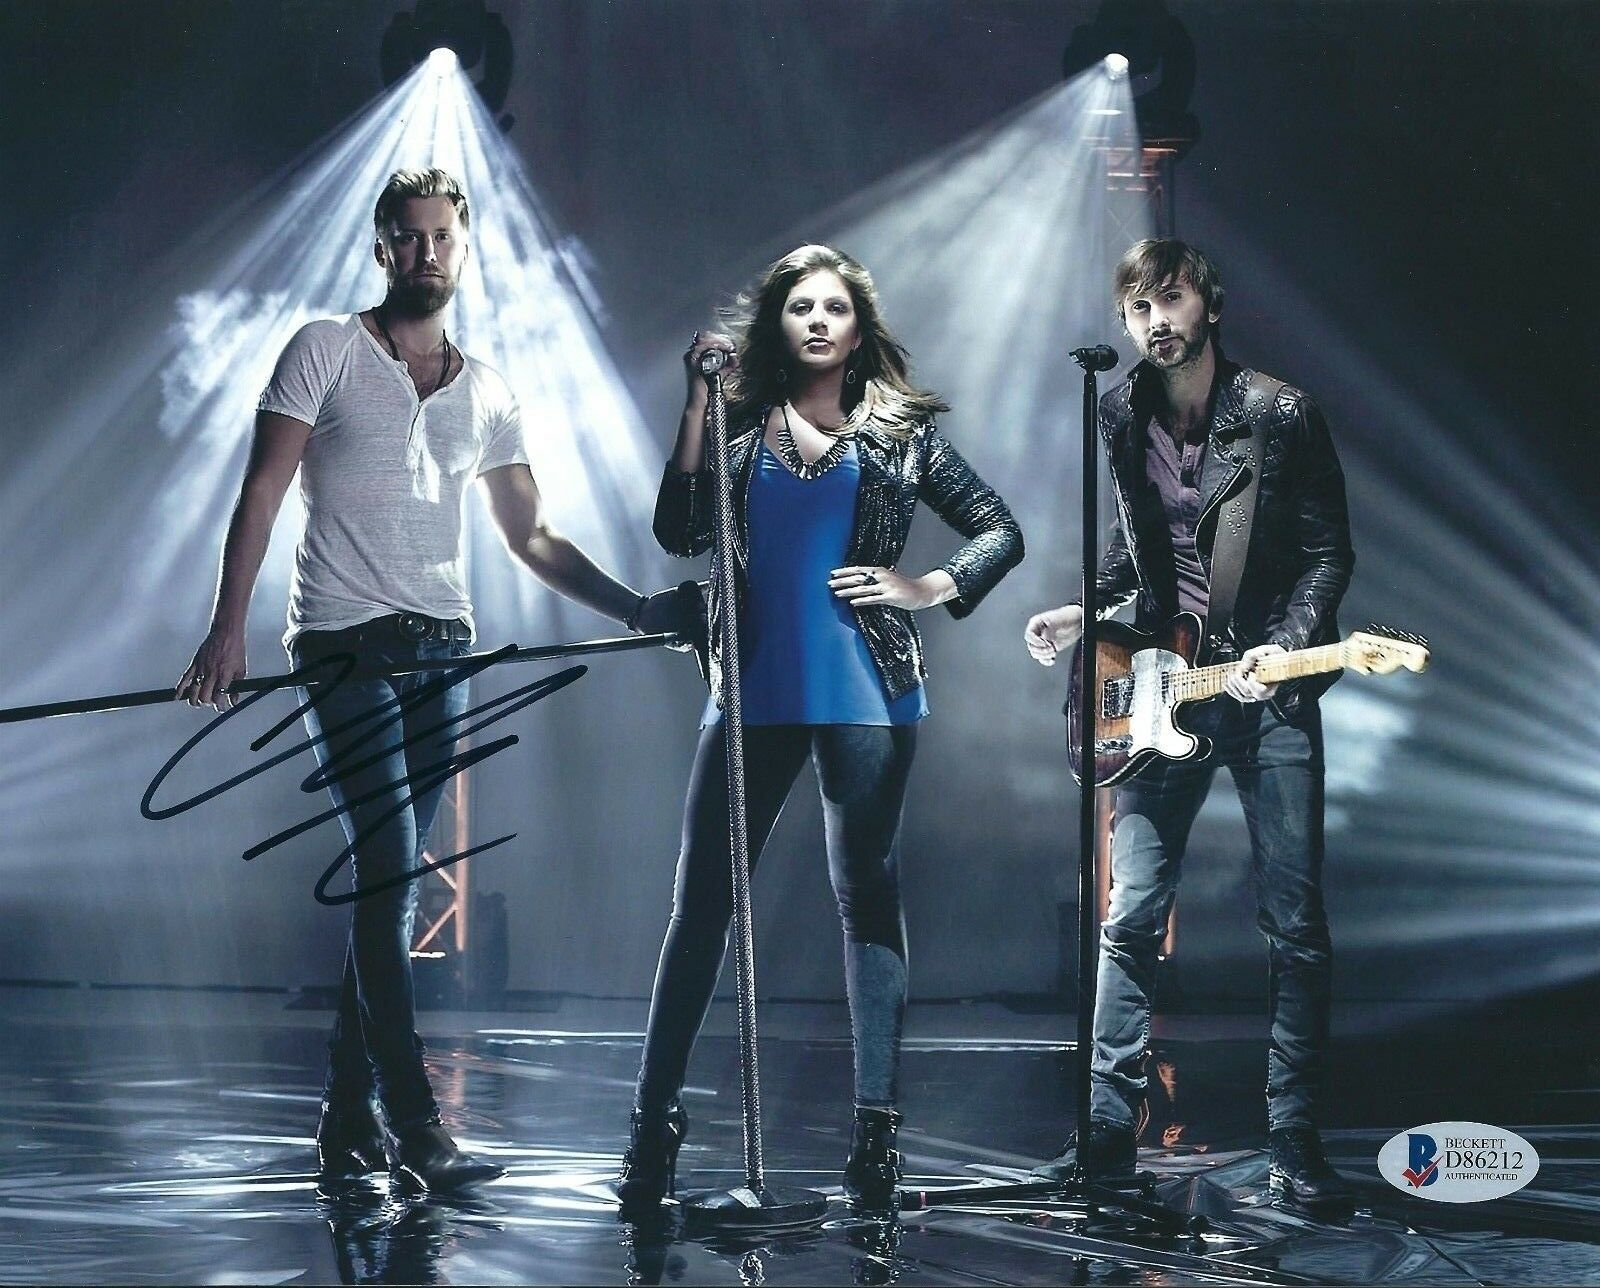 Charles Kelley Signed 8x10 Photo *Dierks Bentley *Lady Antebellum BAS Beckett